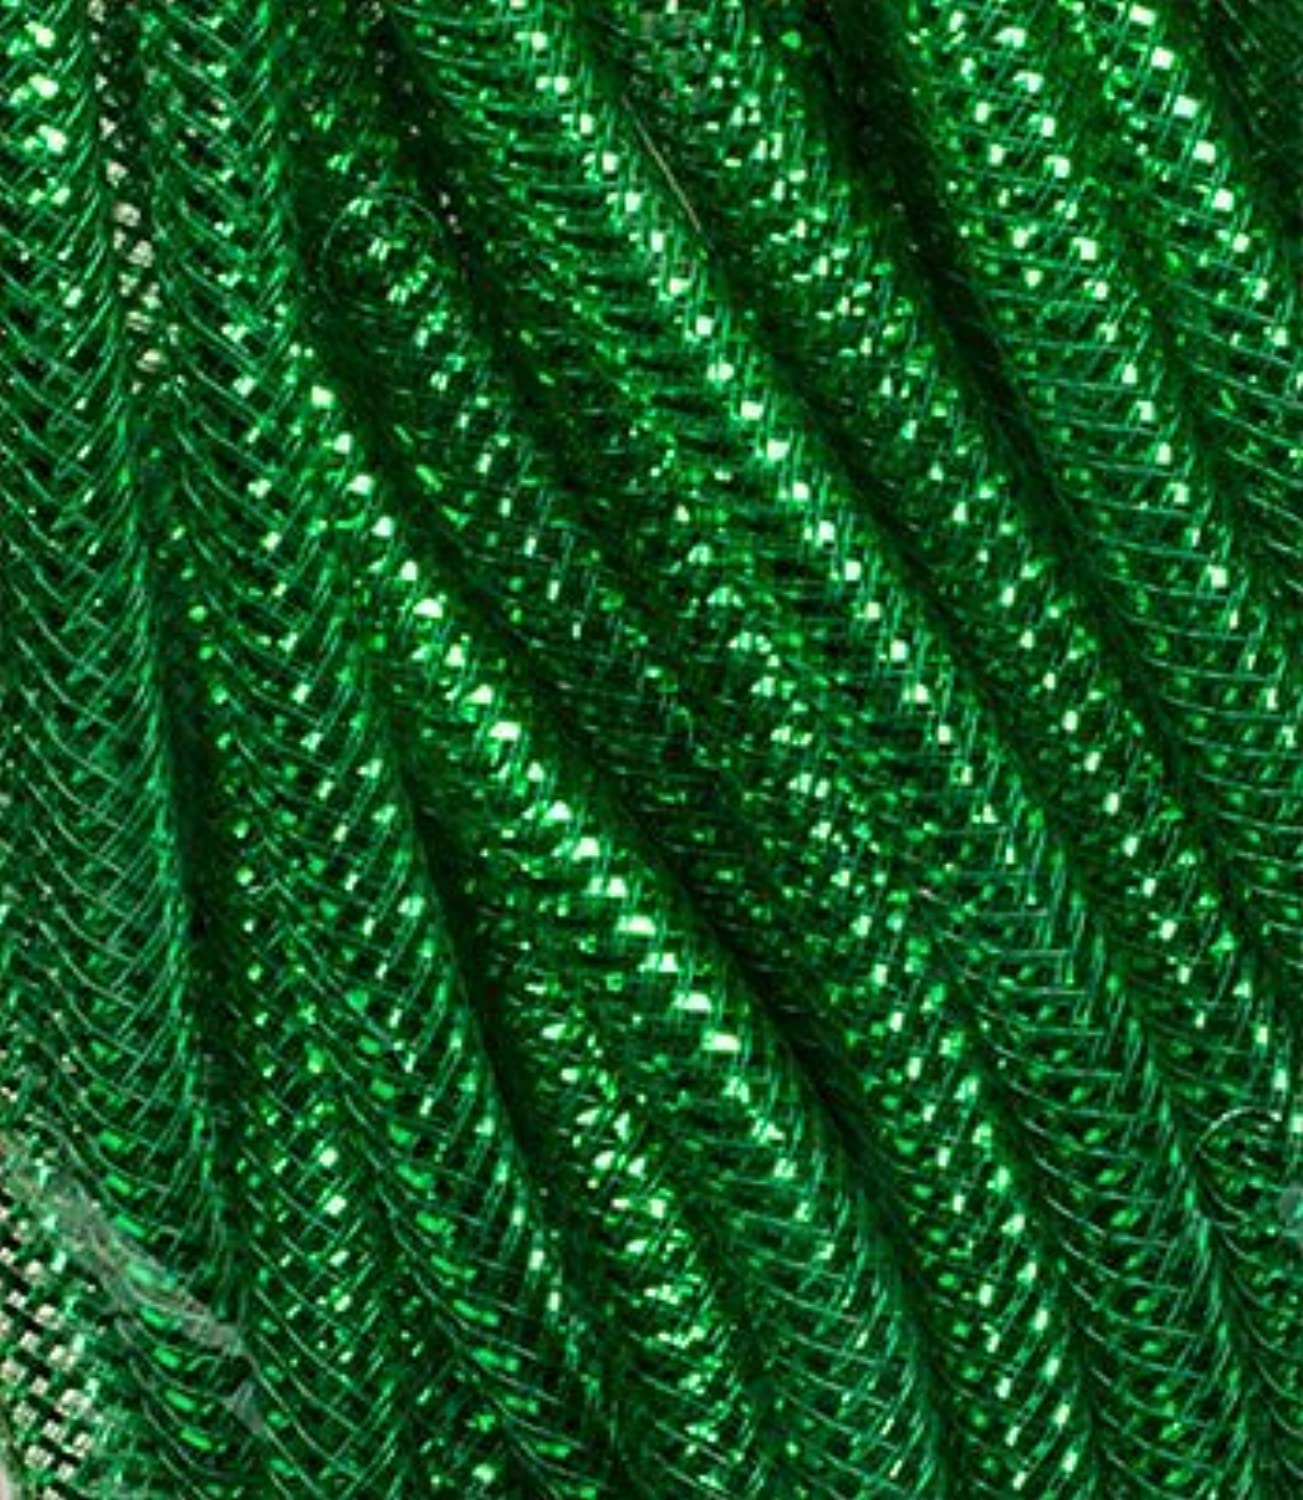 Decoration Crafter's Square Christmas Decorative Mesh Tubes, 12yd. Lengths. Holiday Wreath GREEN